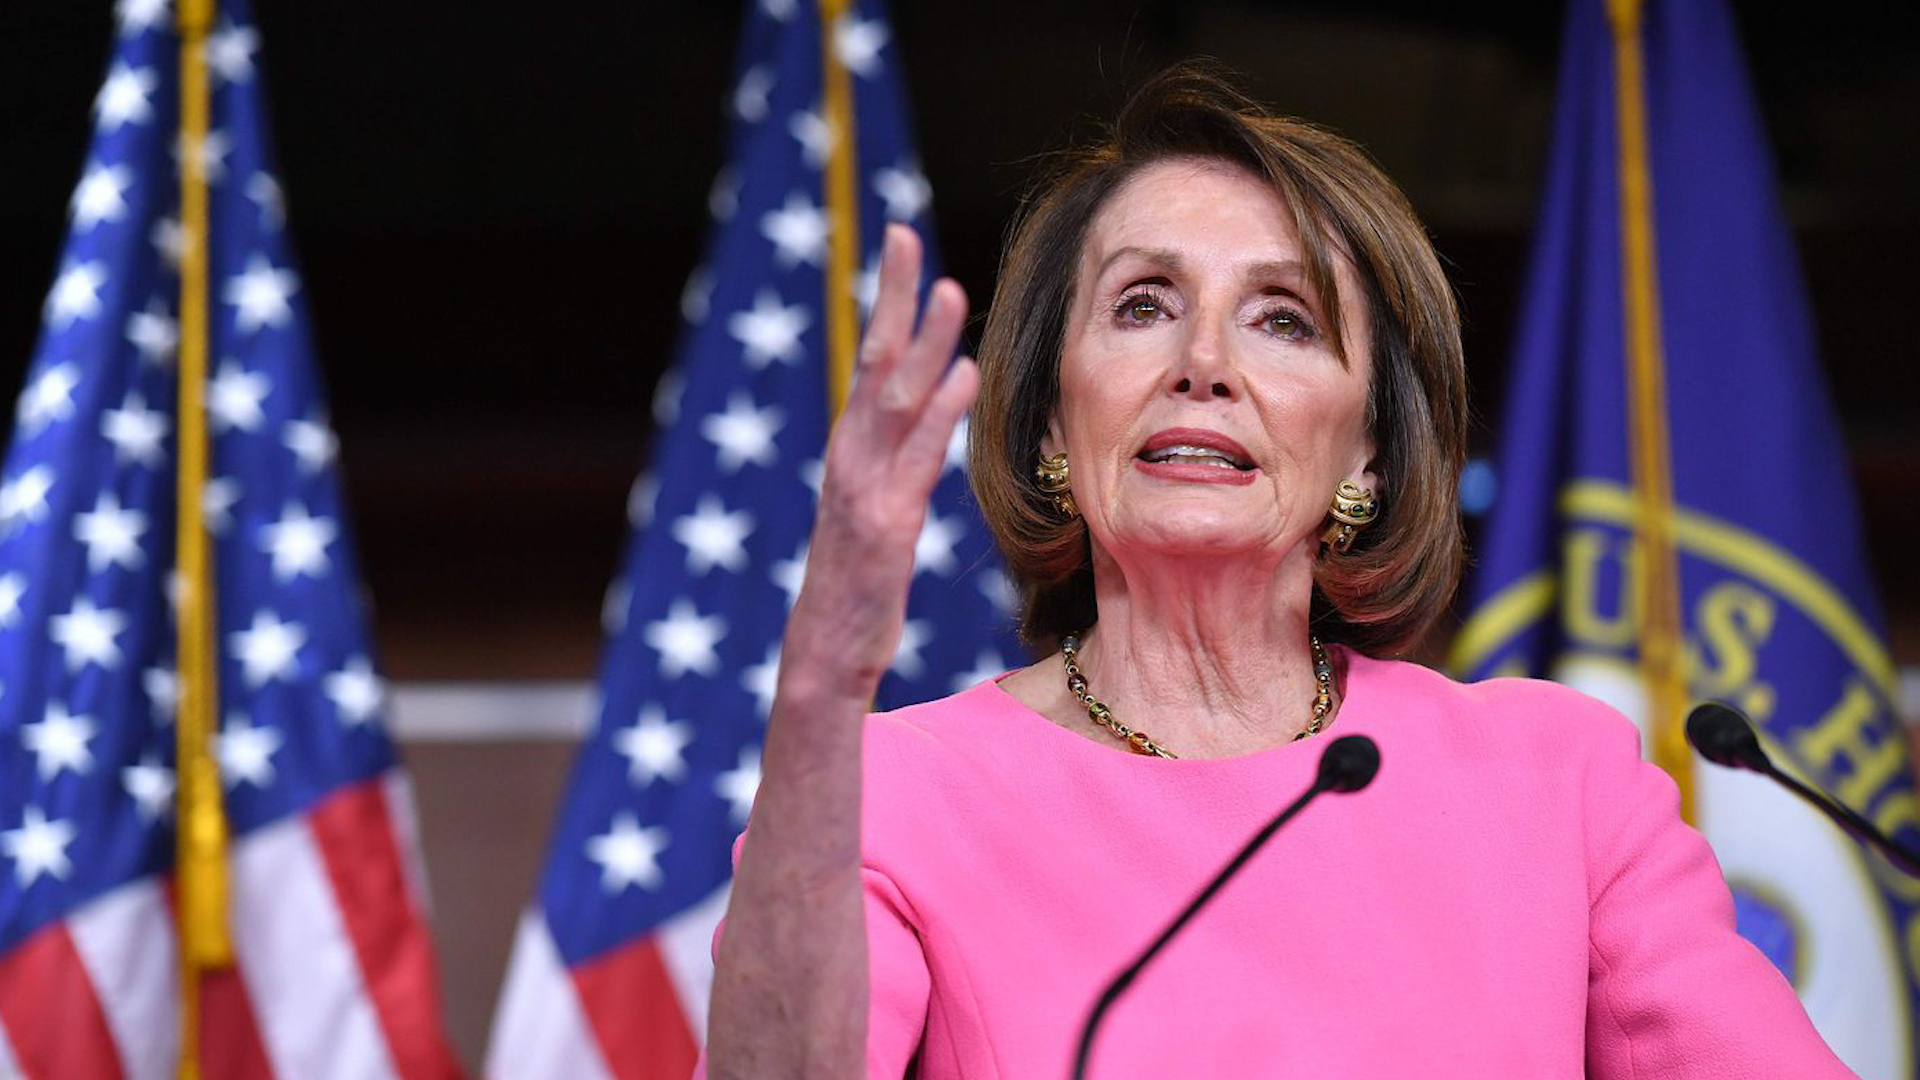 Trump, Pelosi trade insults in power struggle between two party leaders